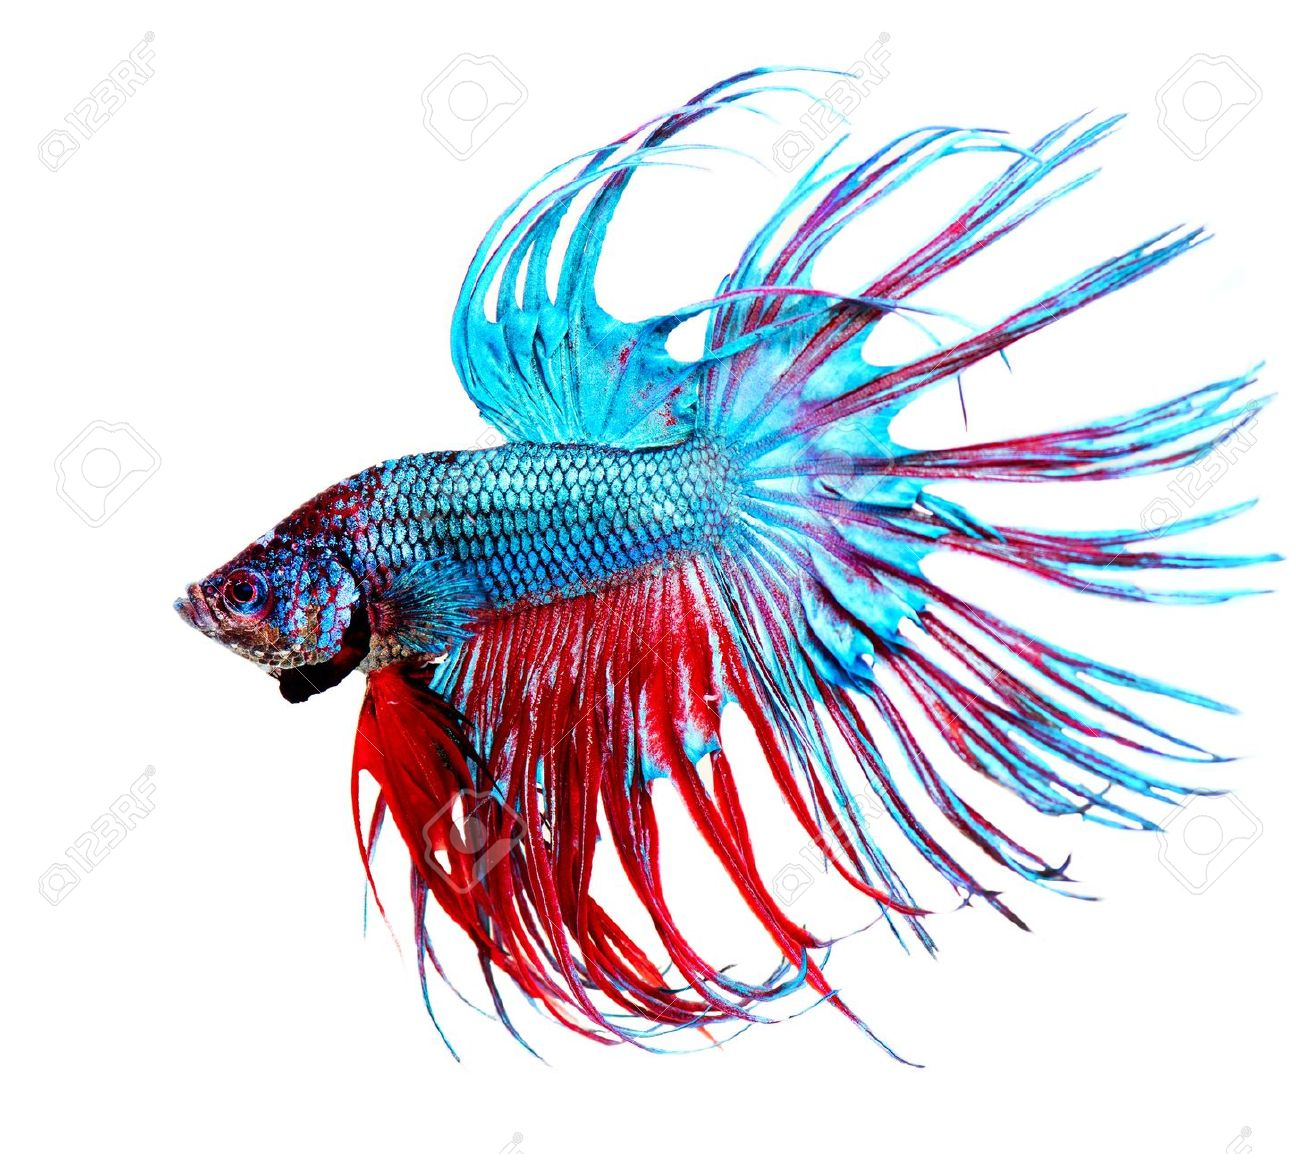 Betta clipart #11, Download drawings